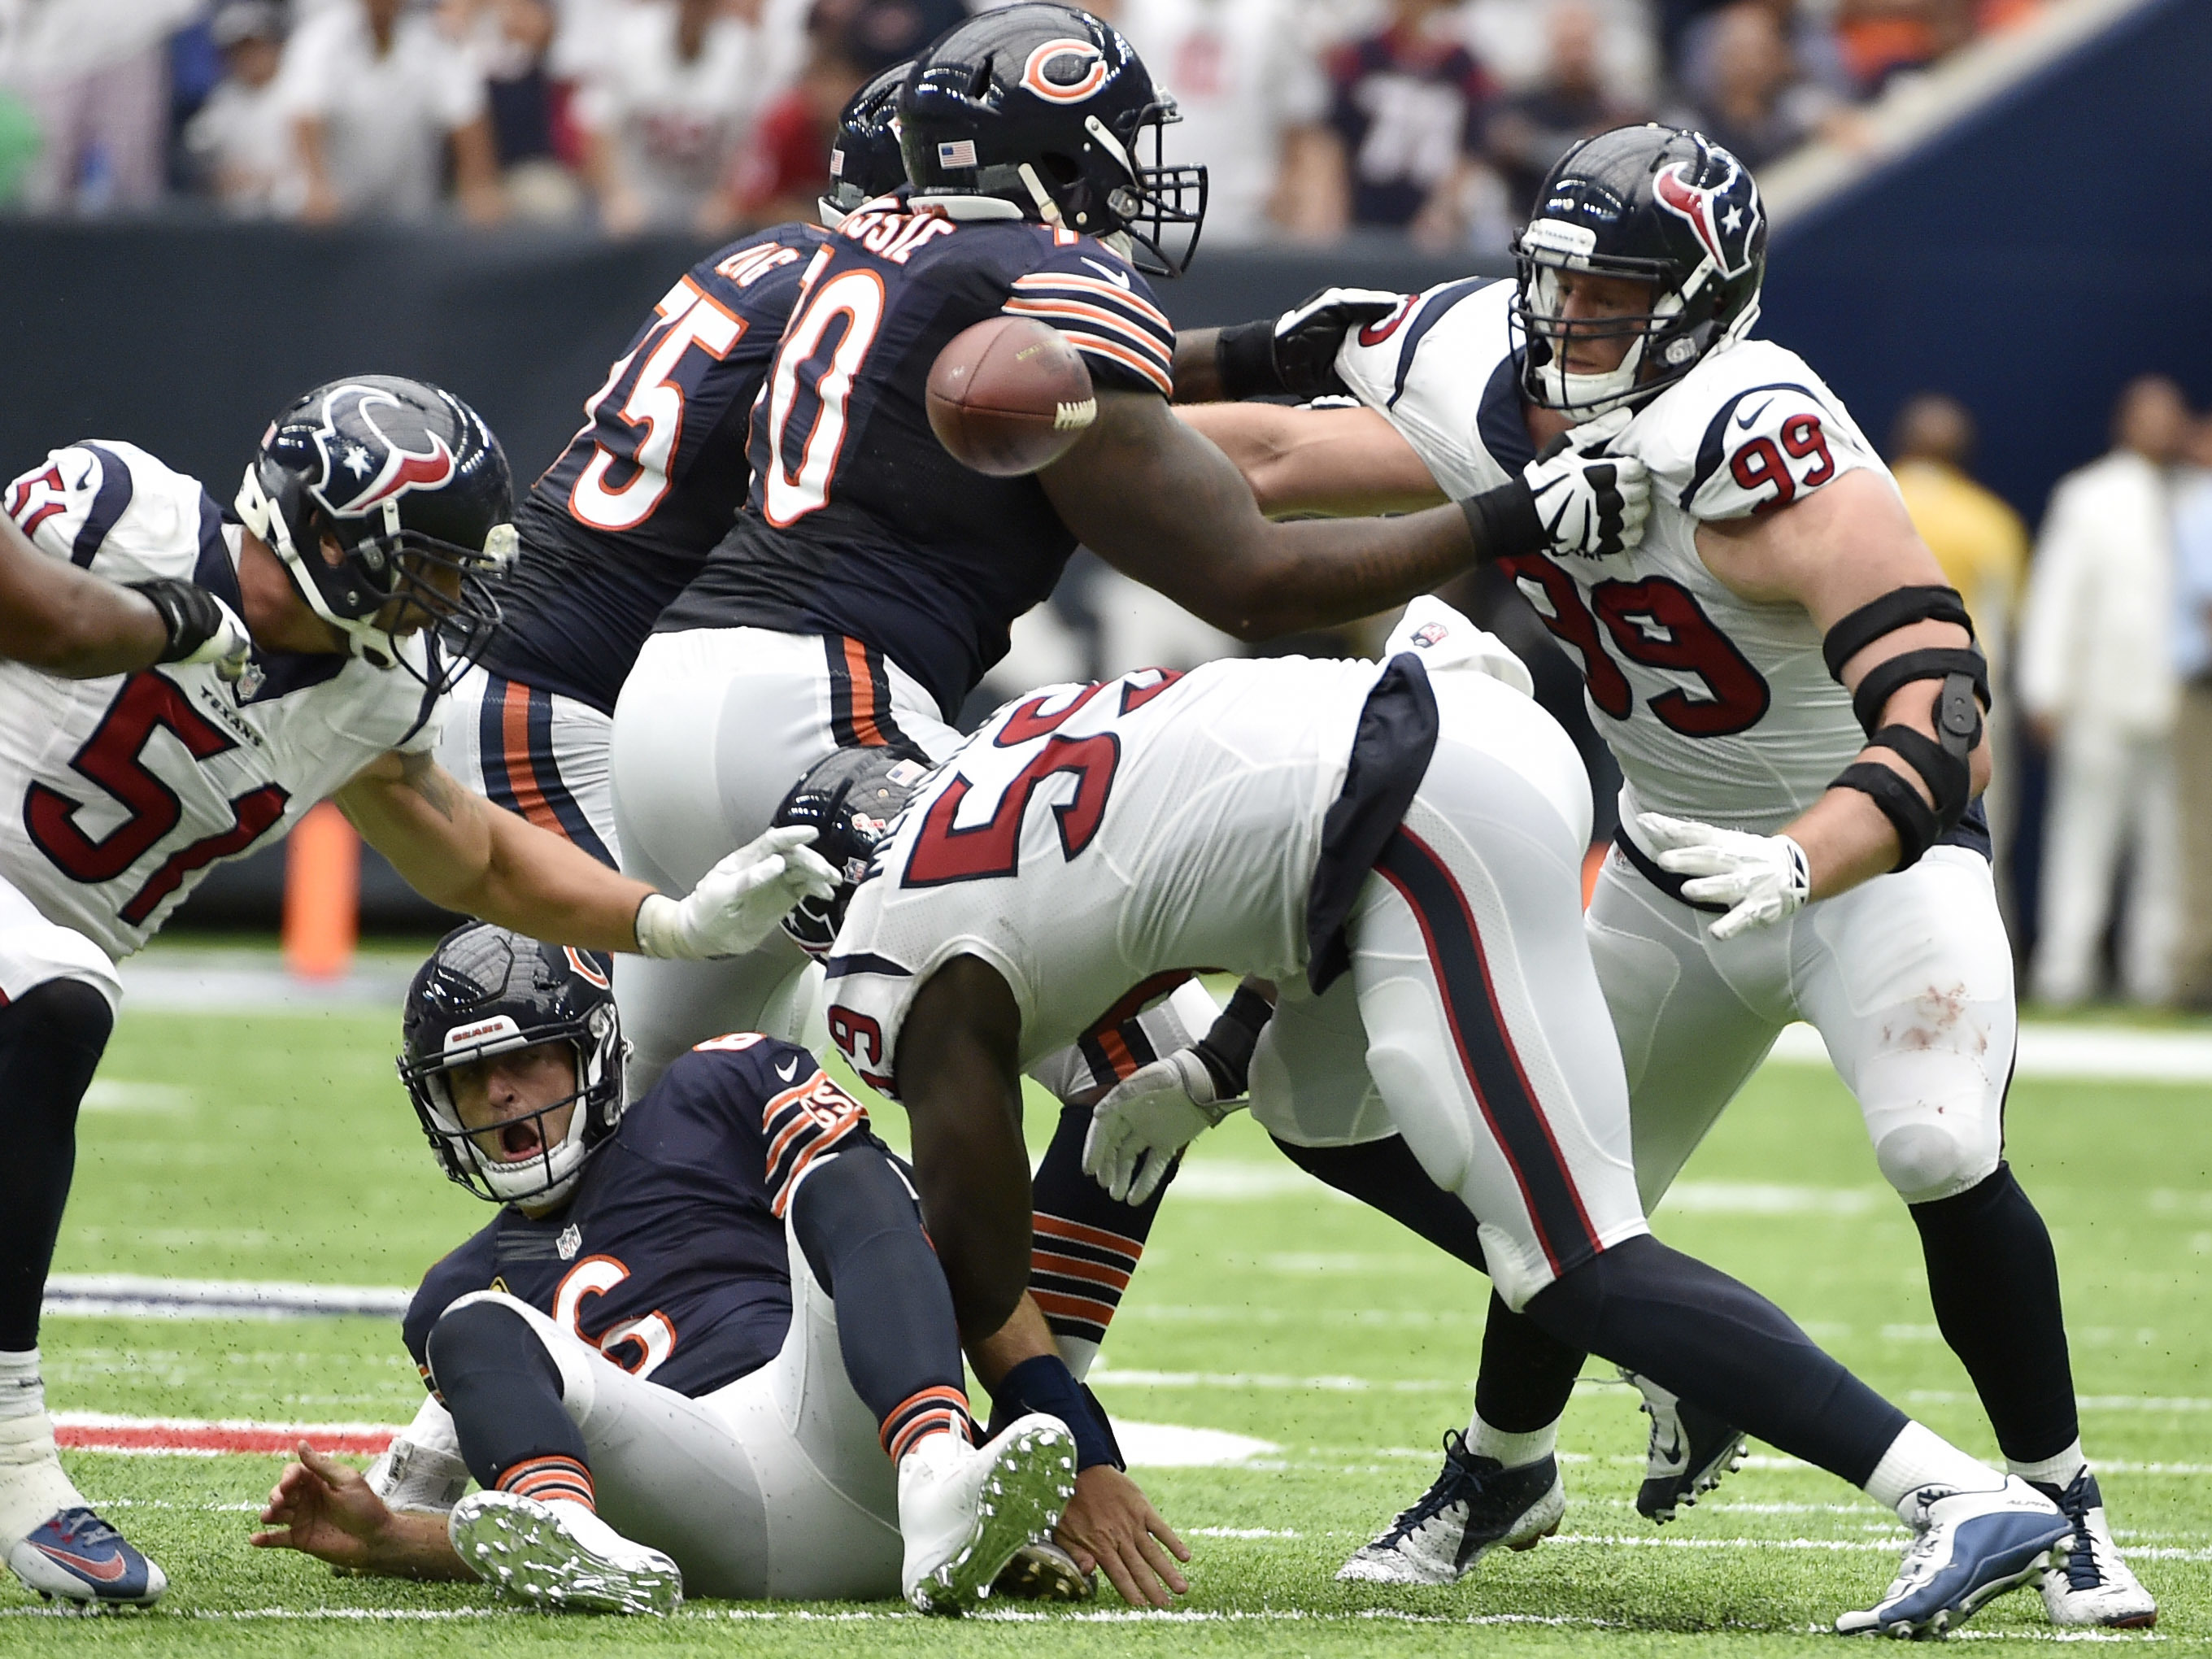 Houston Texans outside linebacker Whitney Mercilus (59) forces Chicago Bears quarterback Jay Cutler, center, to fumble during the second half of an NFL football game Sunday, Sept. 11, 2016, in Houston. Houston Texans defensive end J.J. Watt (99) and outsi